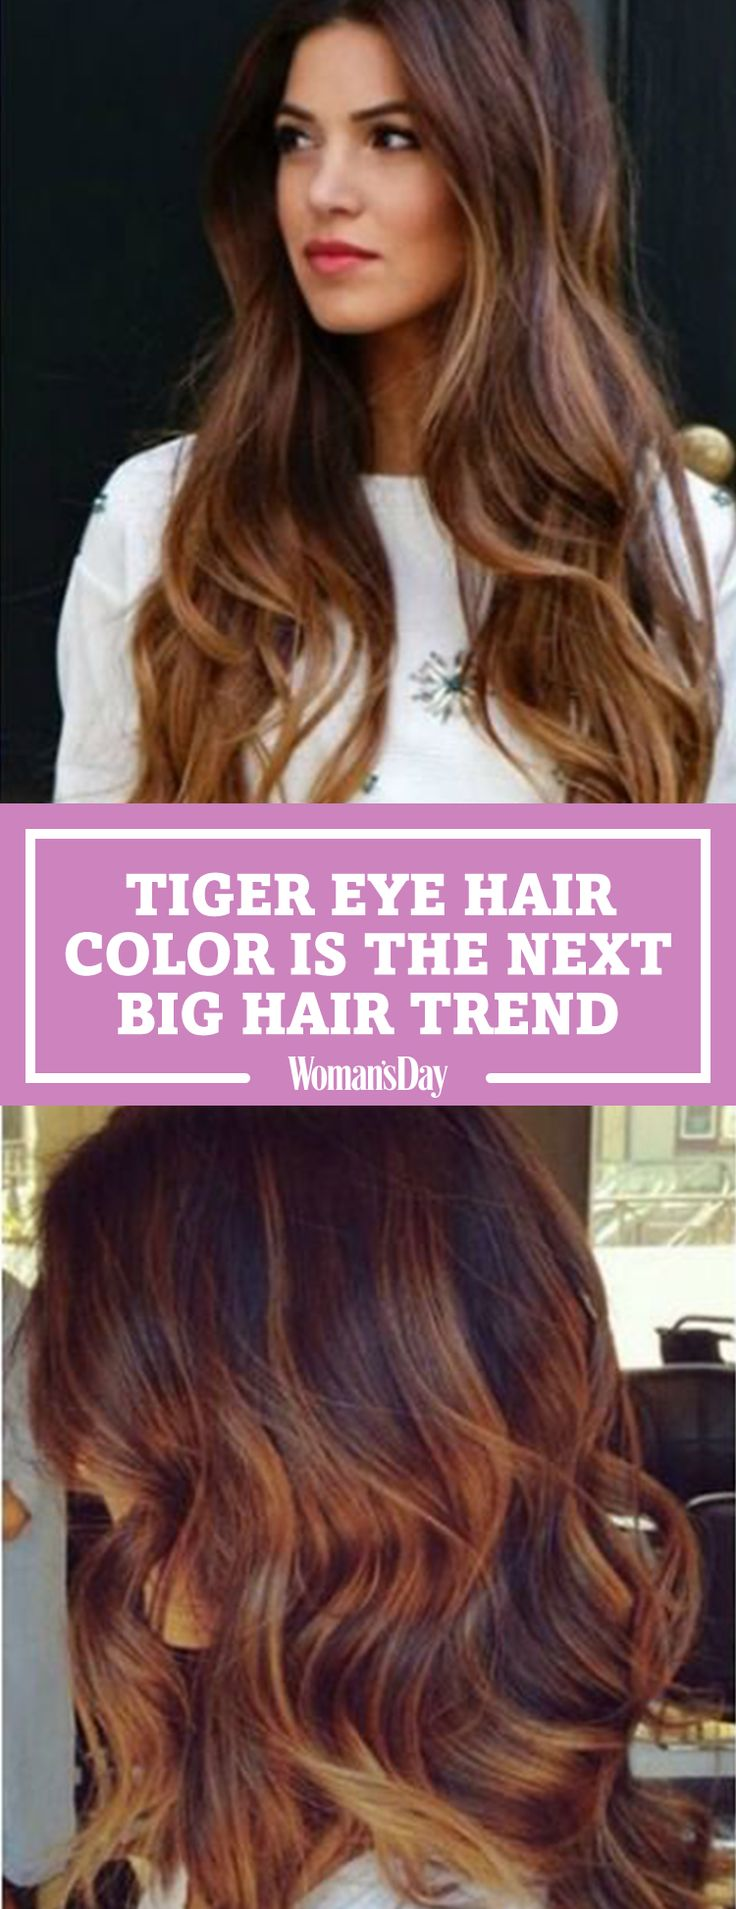 """The """"Tiger Eye"""" hair color trend is officially the next balayage. This hair color is STUNNING and doesn't require any touch-ups. This latest fall hair trend blends a gorgeous mix of warm brown and caramel highlights."""